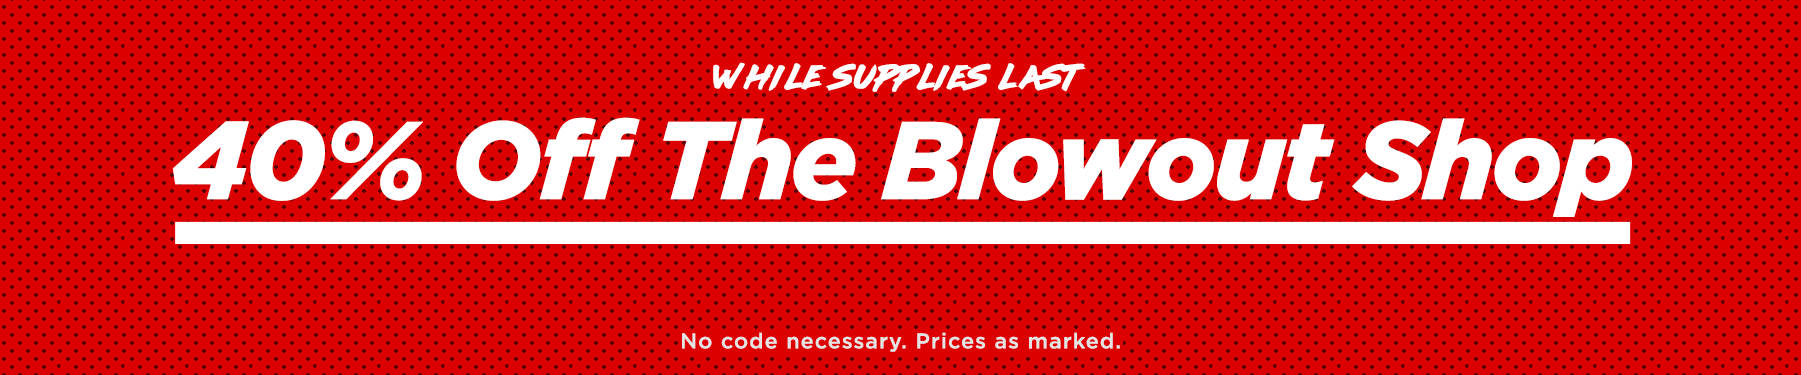 40% Off The Blowout Shop